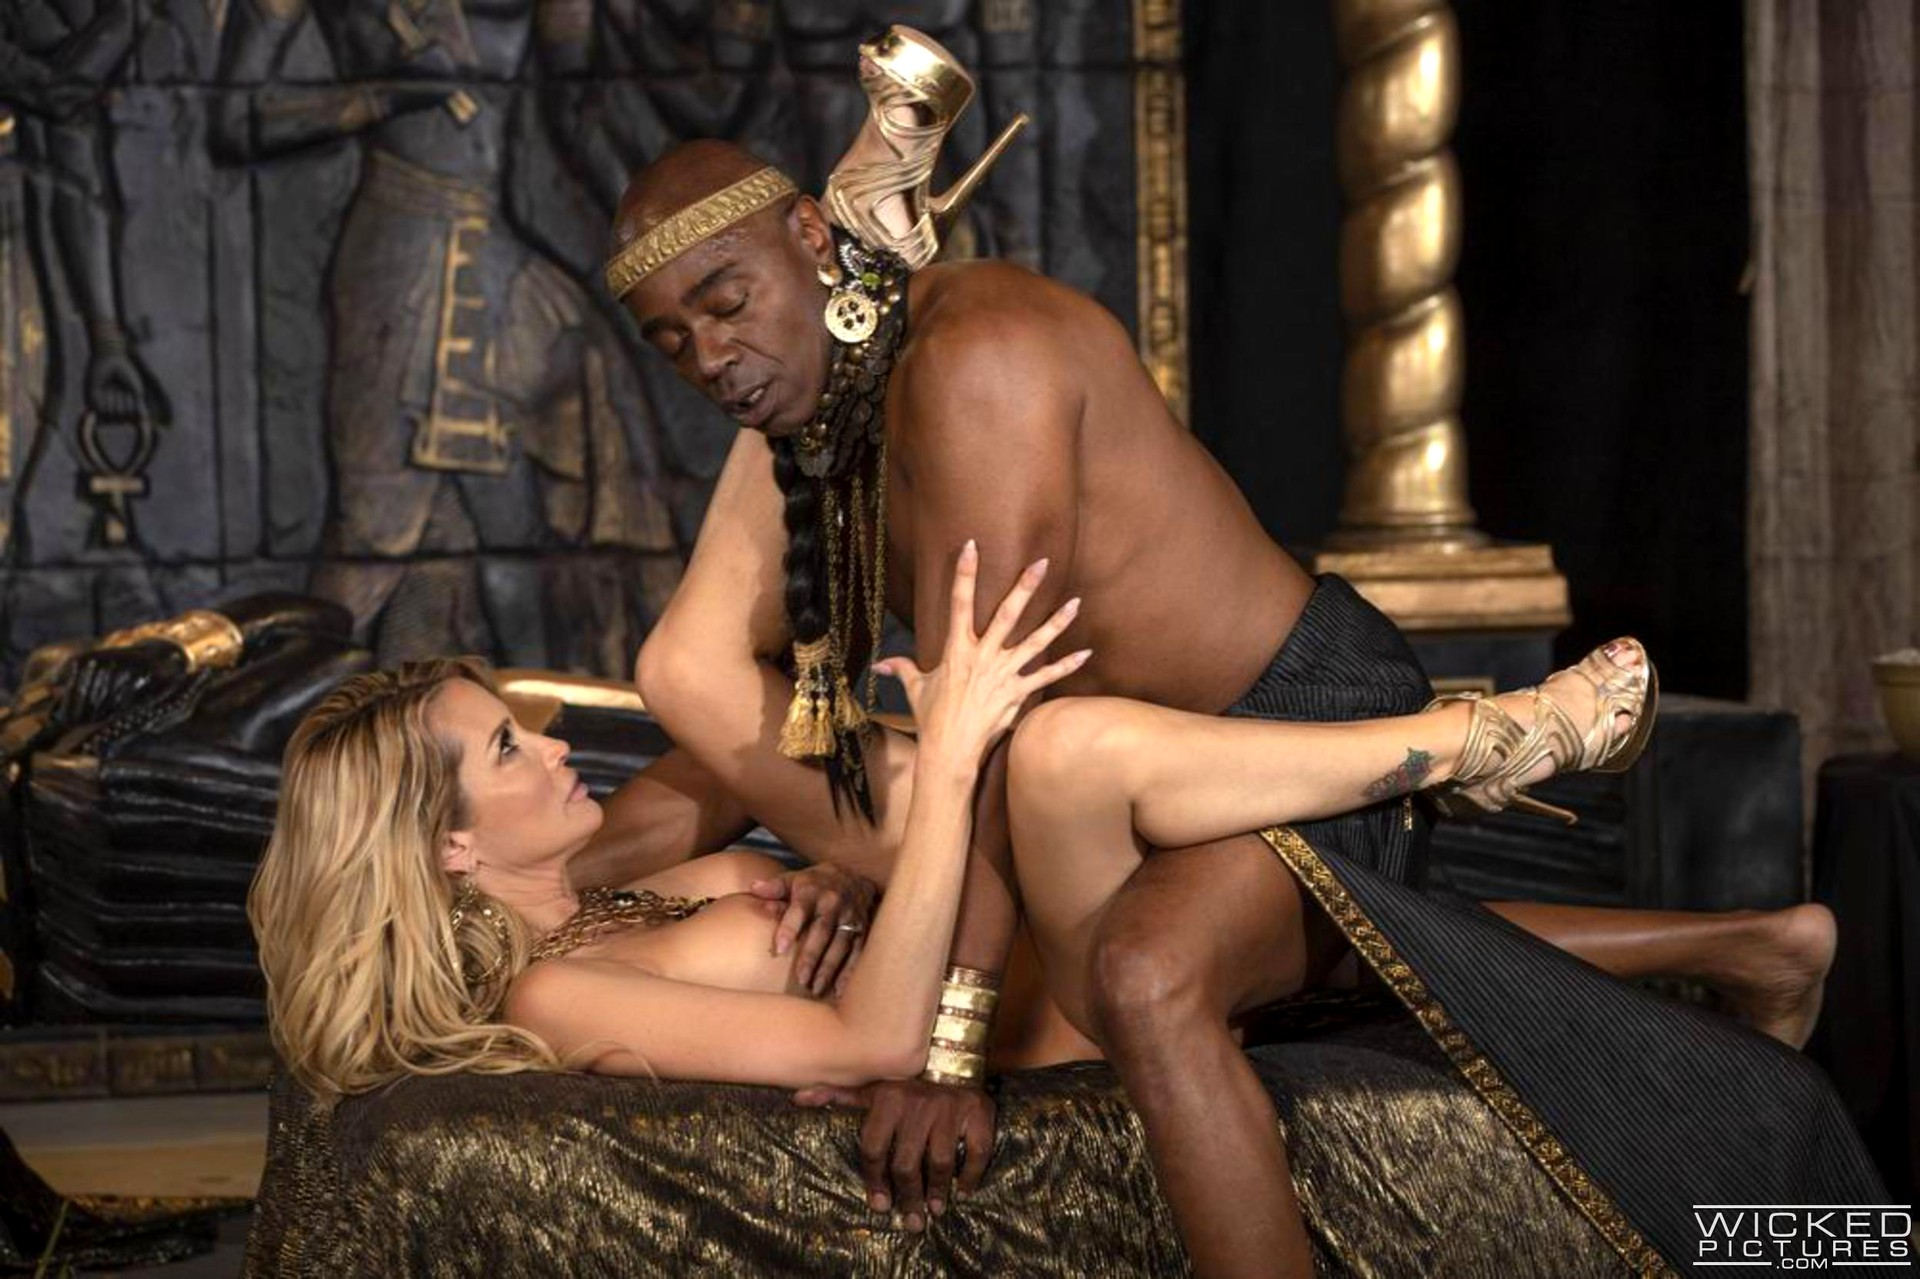 Babe Today Wicked Pictures Jessica Drake Imagescom -9764